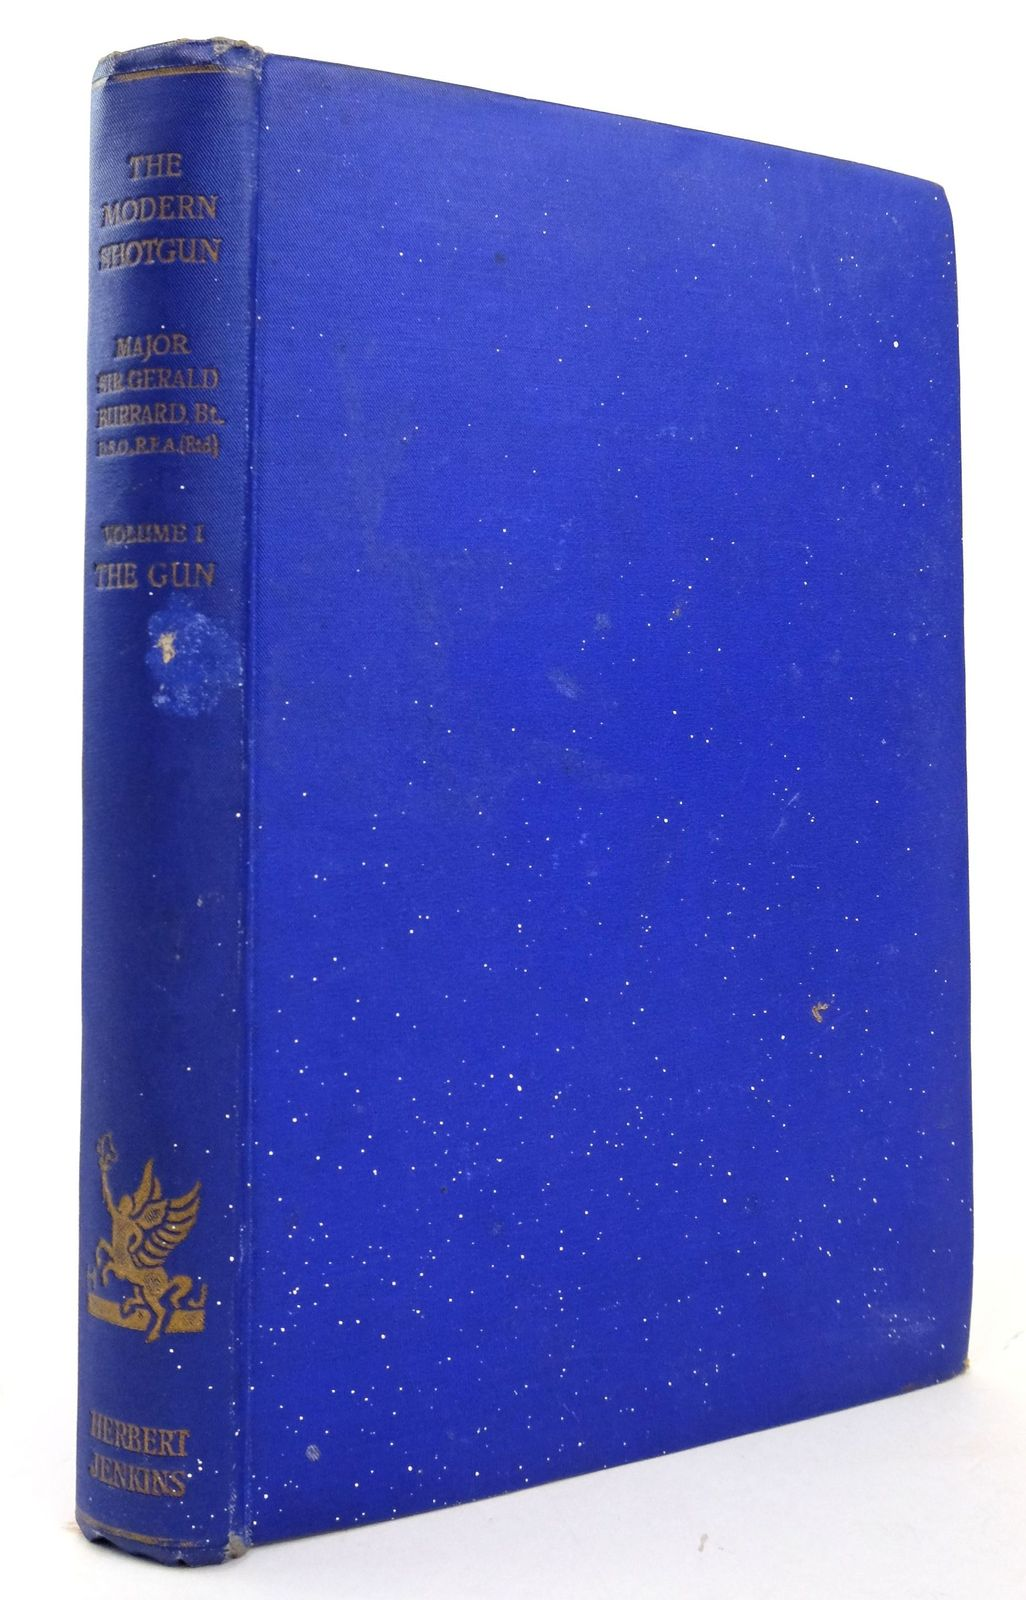 Photo of THE MODERN SHOTGUN VOLUME I THE GUN written by Burrard, Gerald published by Herbert Jenkins (STOCK CODE: 1820165)  for sale by Stella & Rose's Books